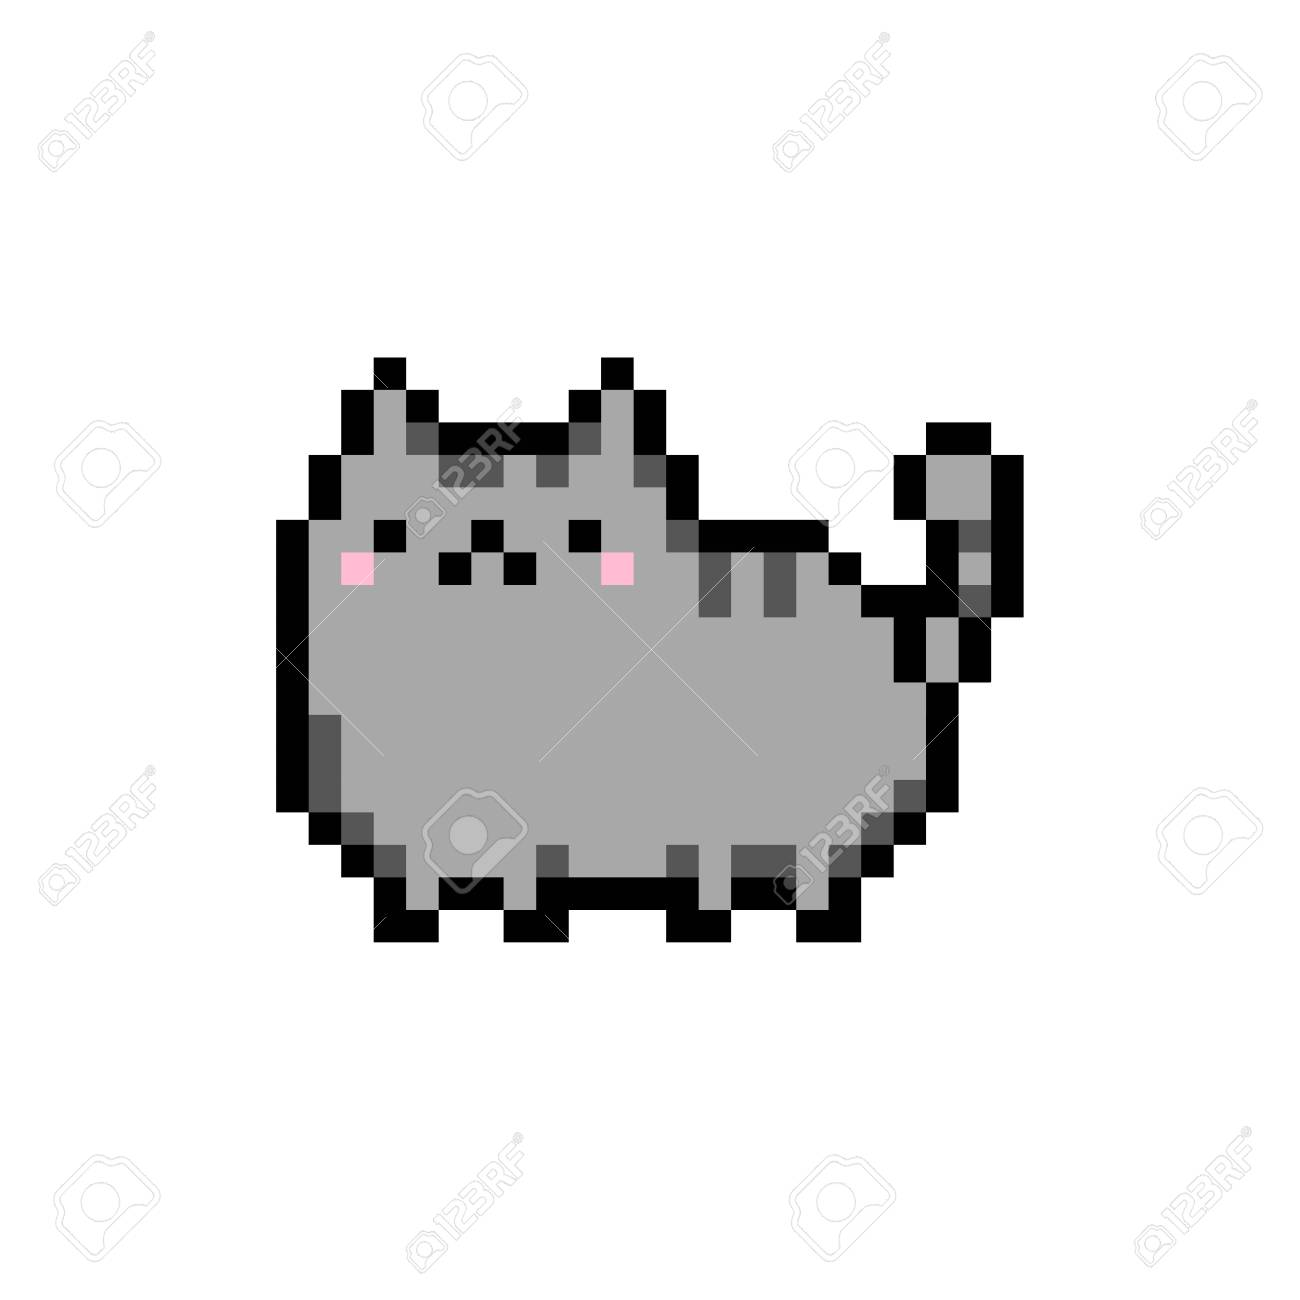 Cute Kitten Domestic Pet Pixel Art Isolated Vector Illustration